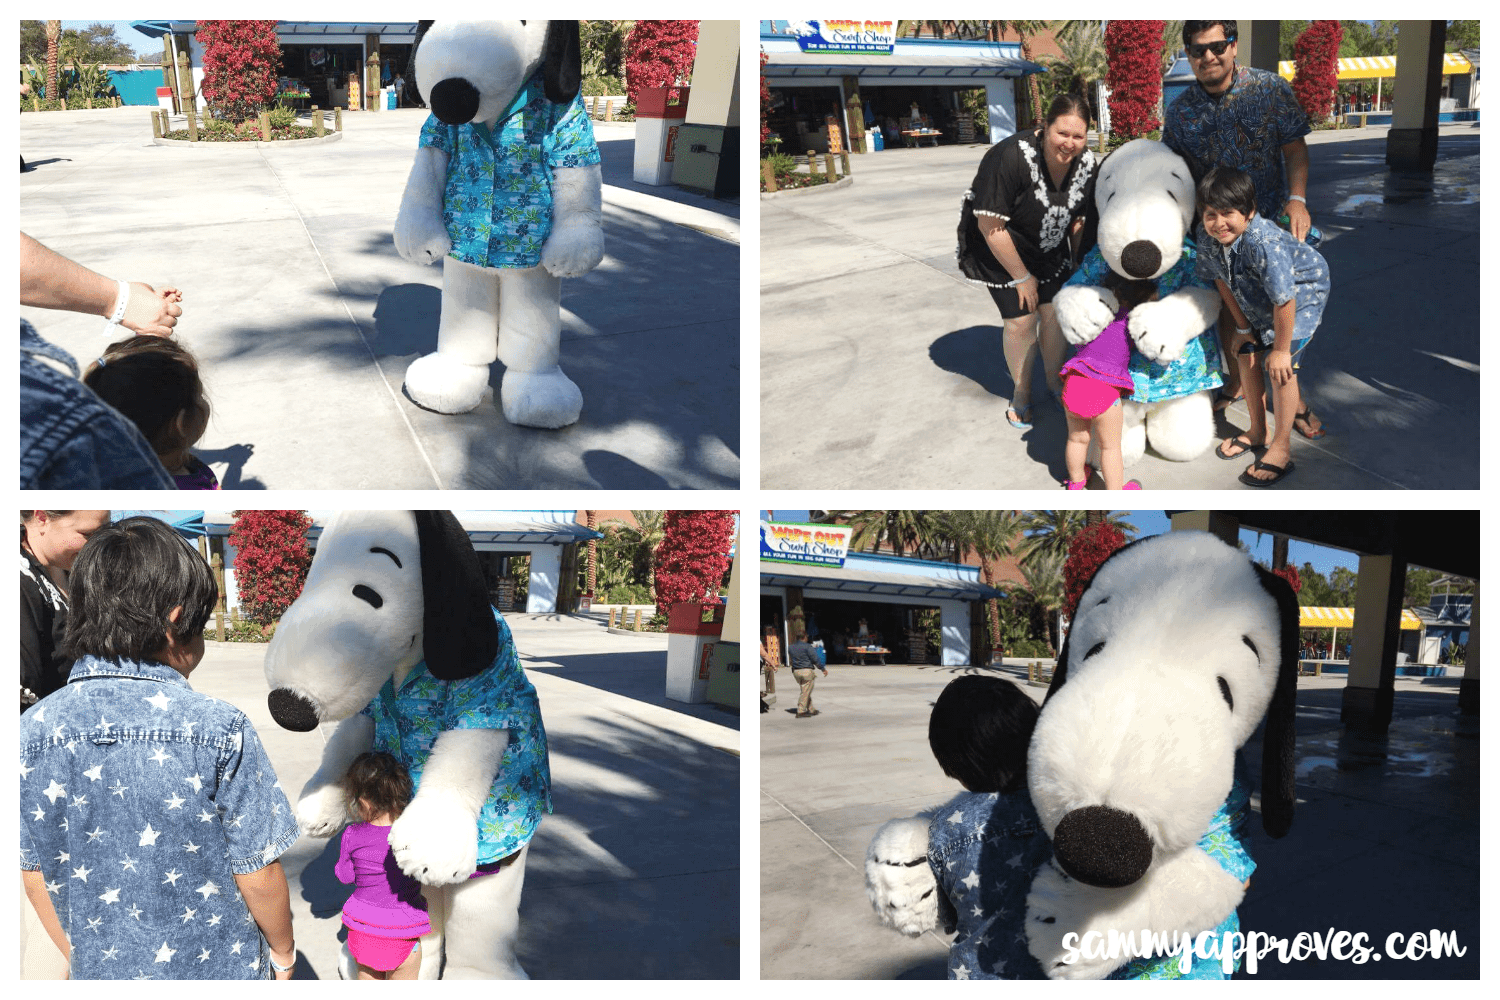 Keep Your Family Cool at the Expanded Knott's Soak City: Buena Park, CA